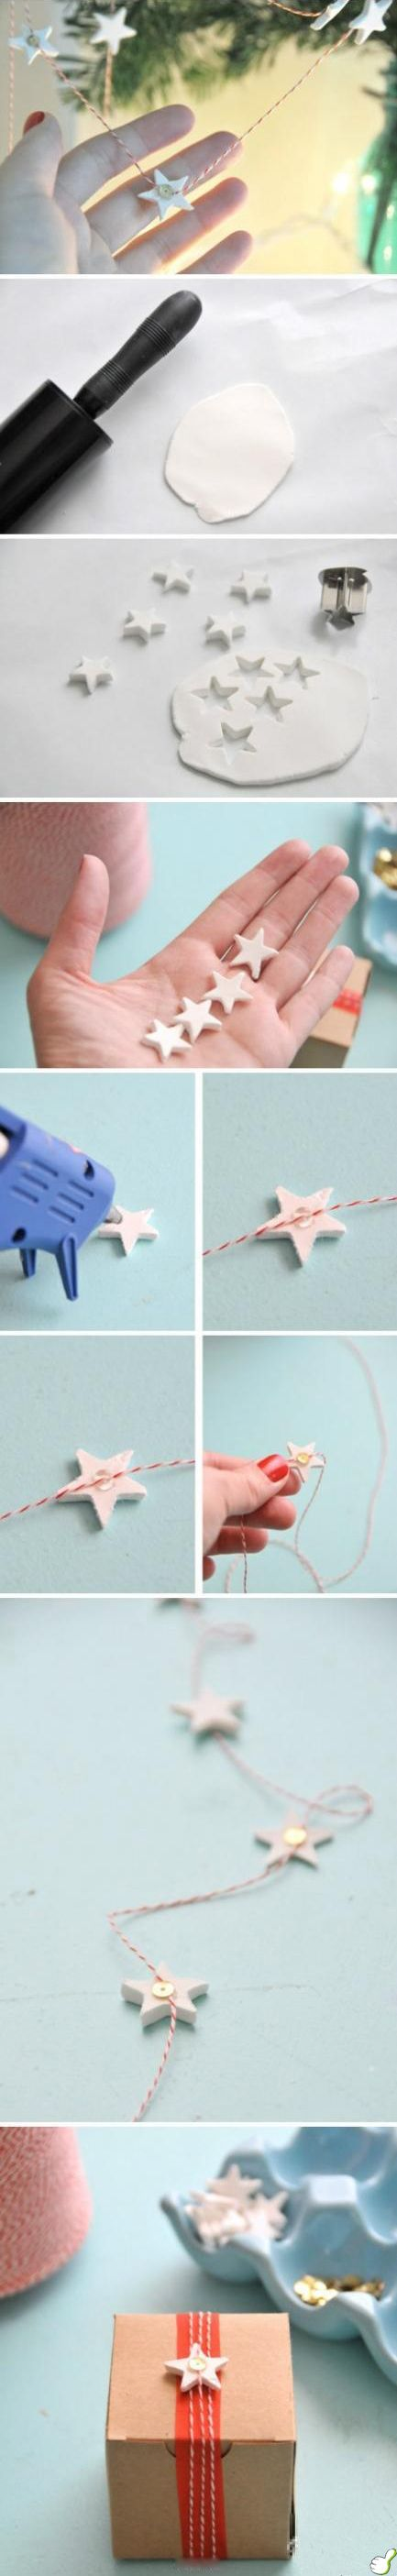 DIY Scandinavian Inspired Star Garland.